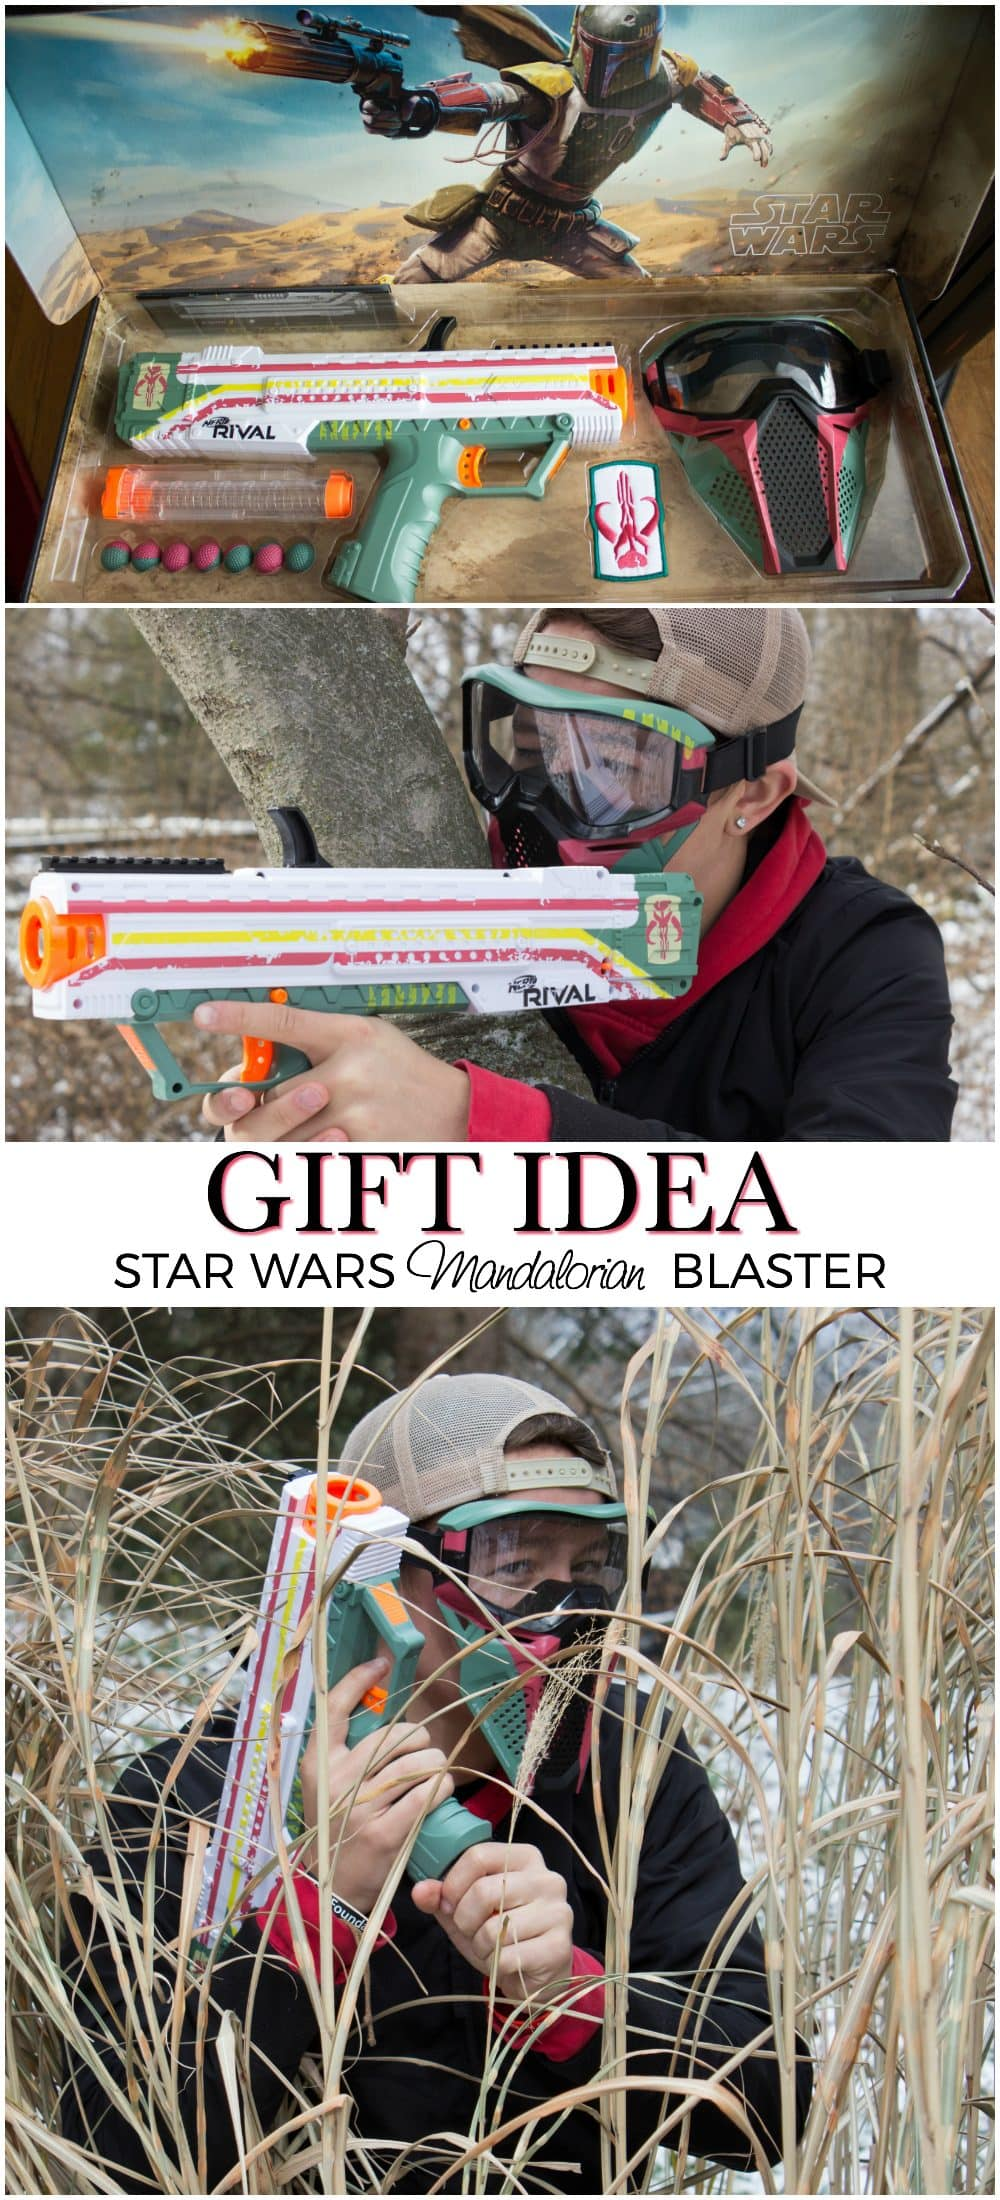 Star Wars Gift Idea - Nerf Rival Apollo XV-700 - Star Wars Mandalorian Edition Blaster and Face Mask - Only at #GameStop #StarWars #TheLastJedi #TheLastJediEvent AD